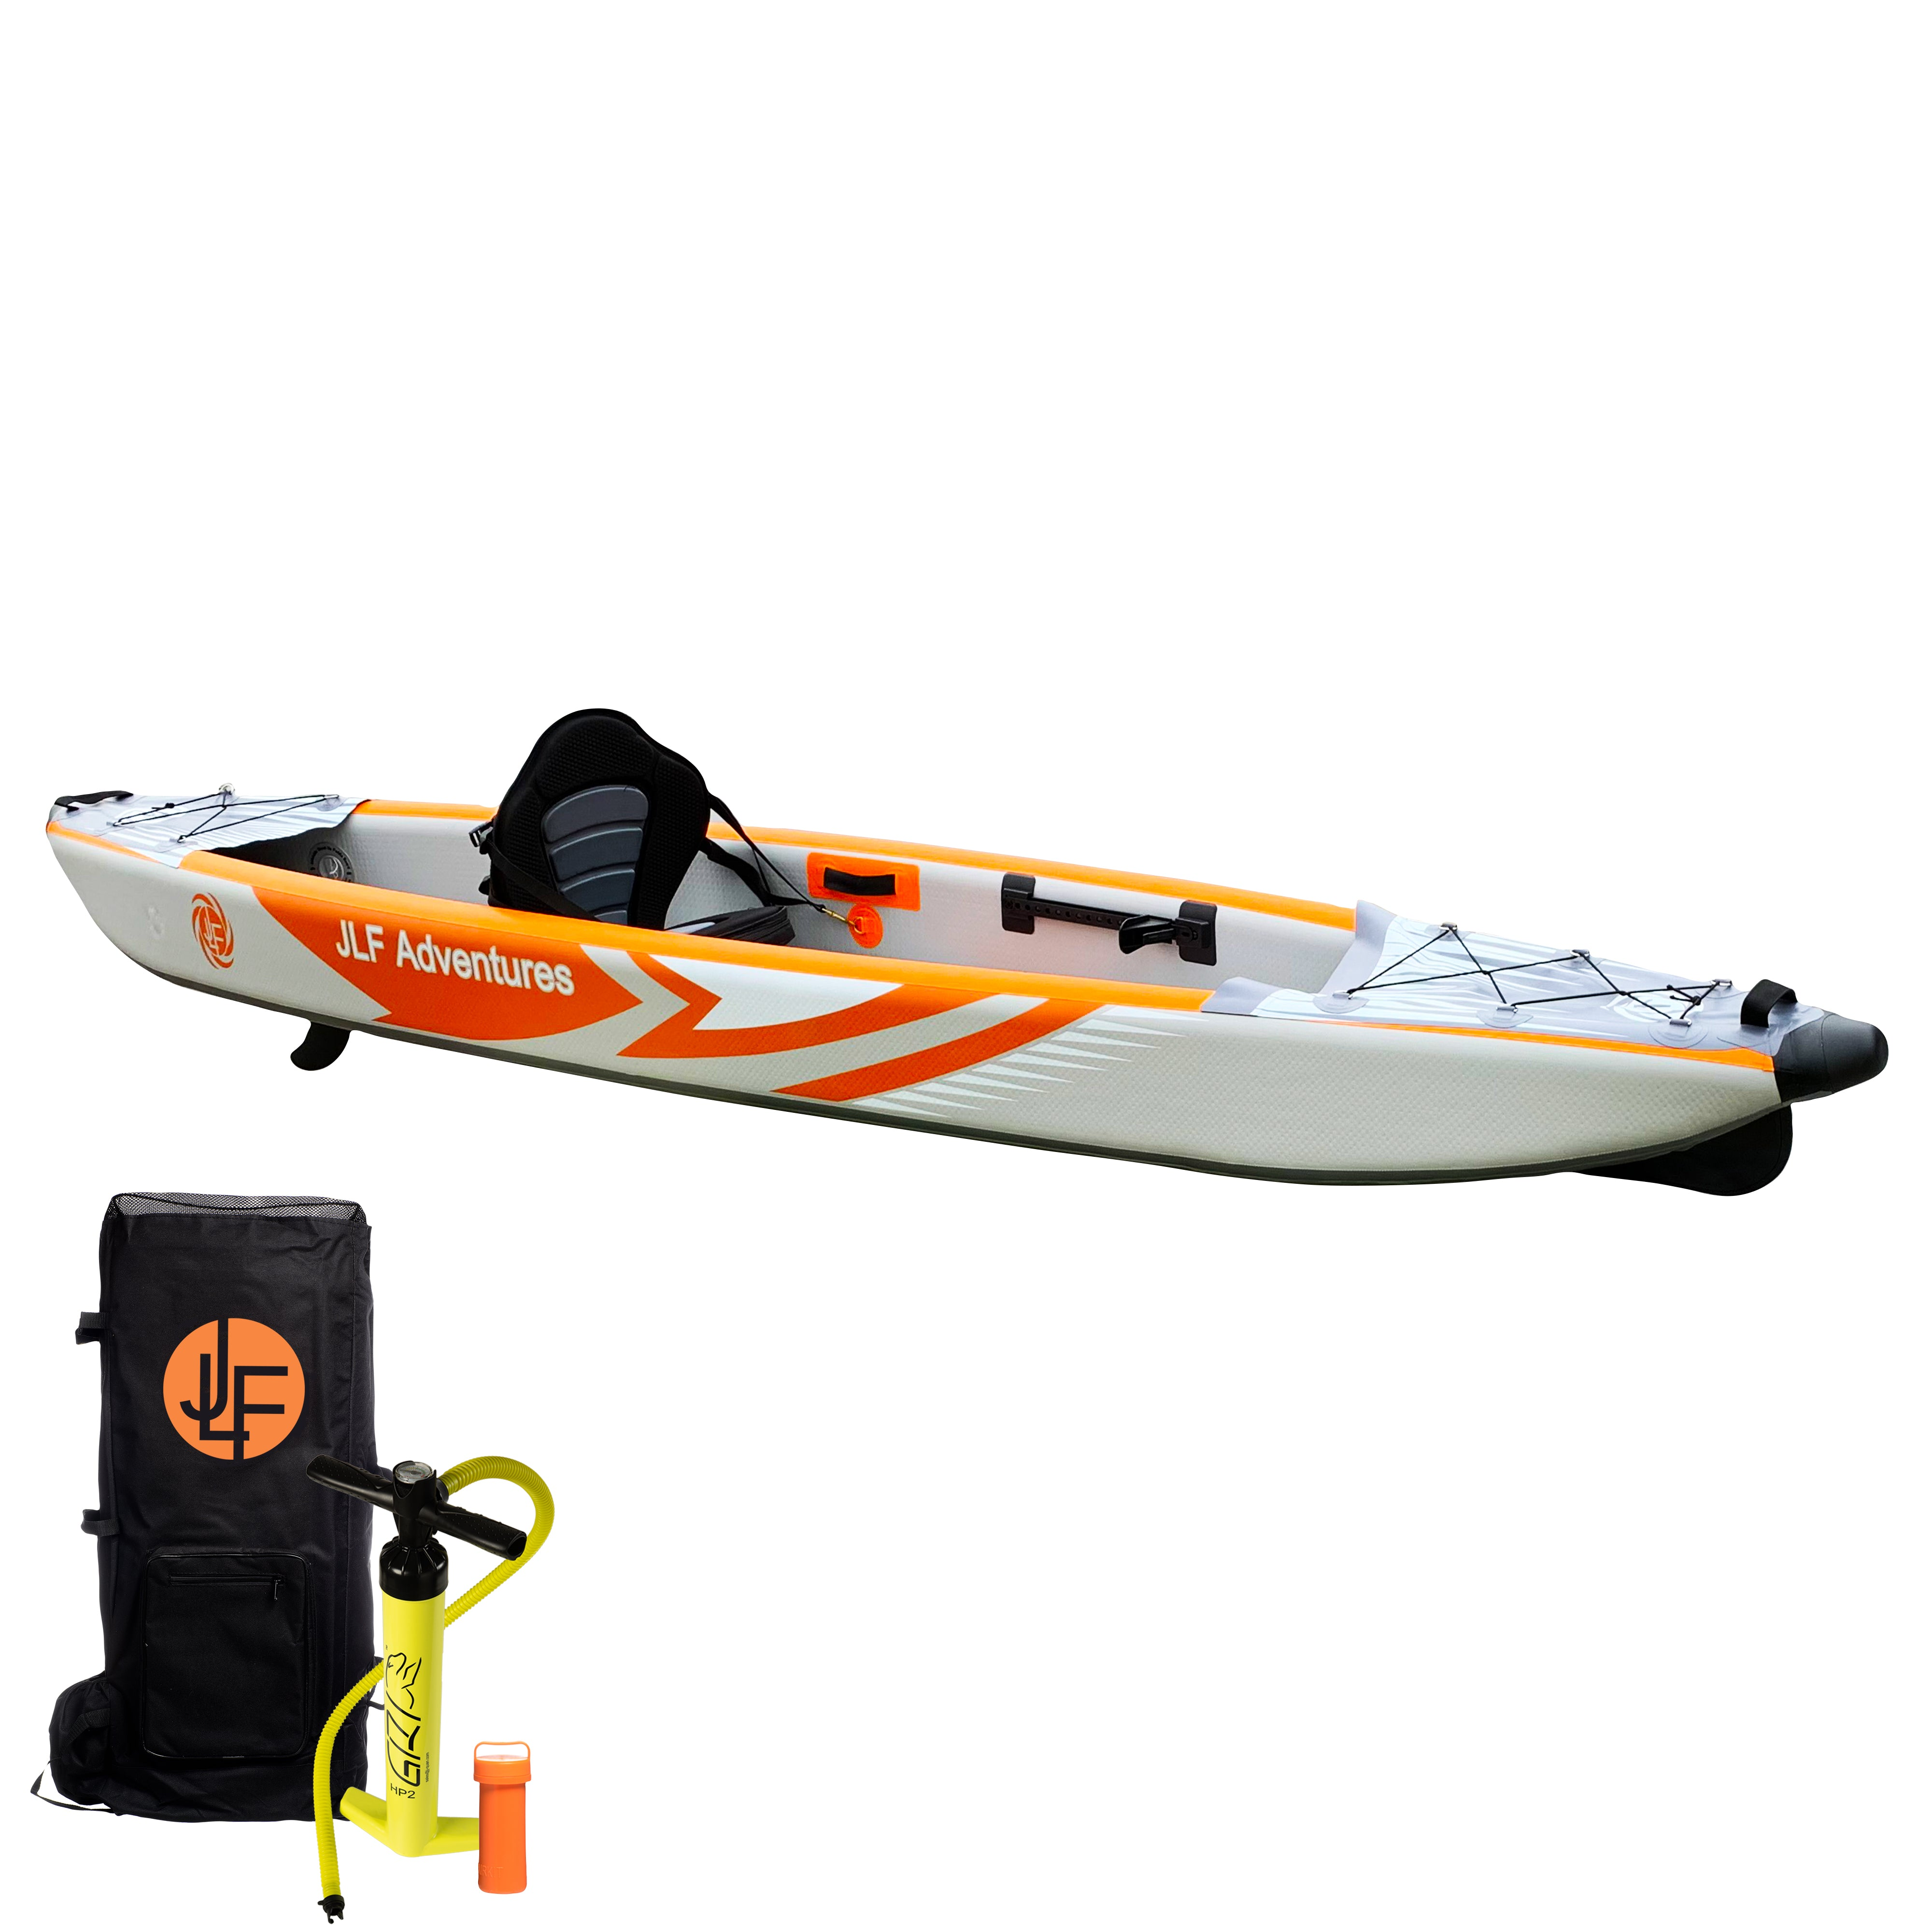 JLF 12 FT Inflatable Kayak Set | Includes:  Kayak, Adjustable Foot Rests, Detachable Padded Kayak Seat, Dual Action Hand Pump, Backpack [Paddle Sold Separately]